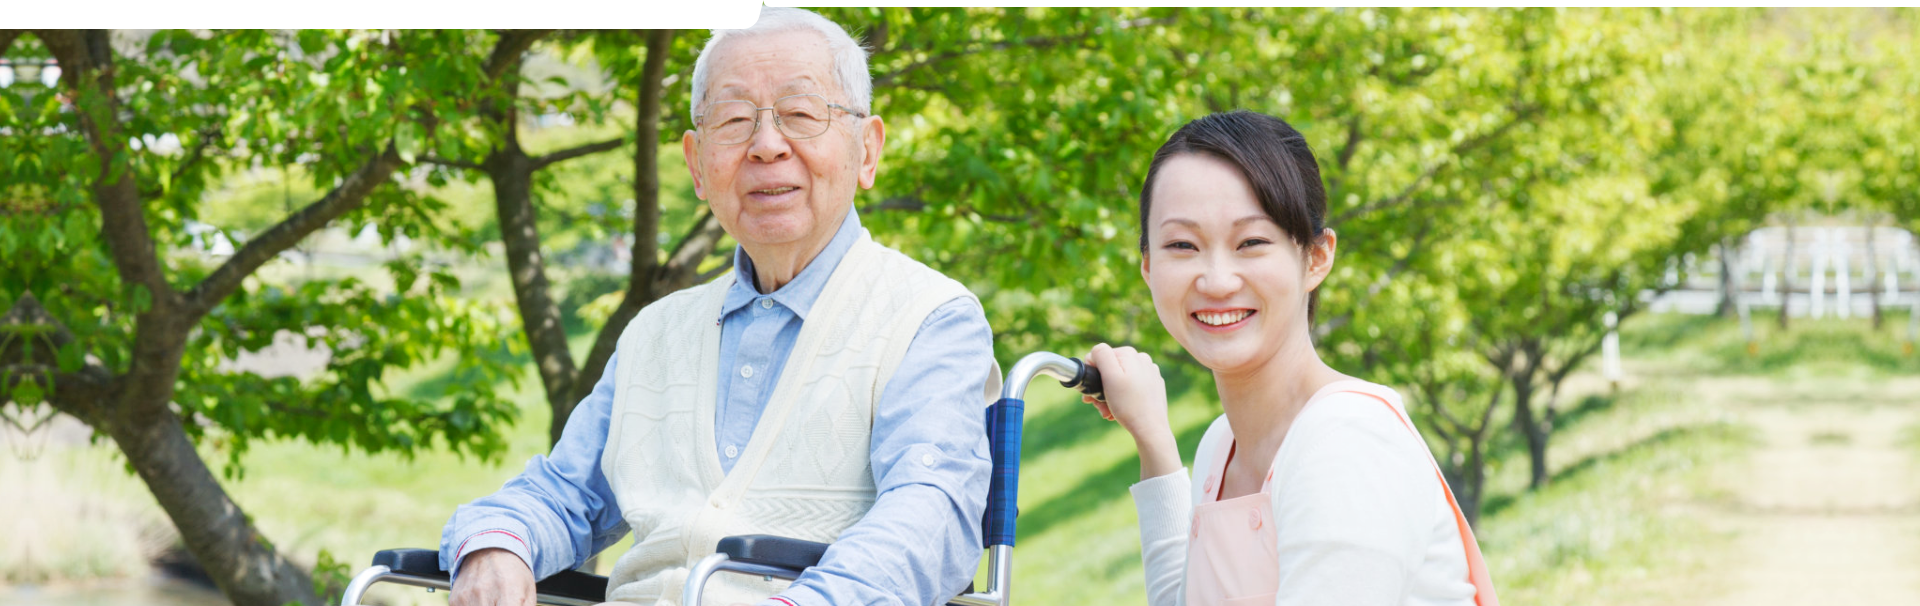 Asian caregiver accompanying an elderly